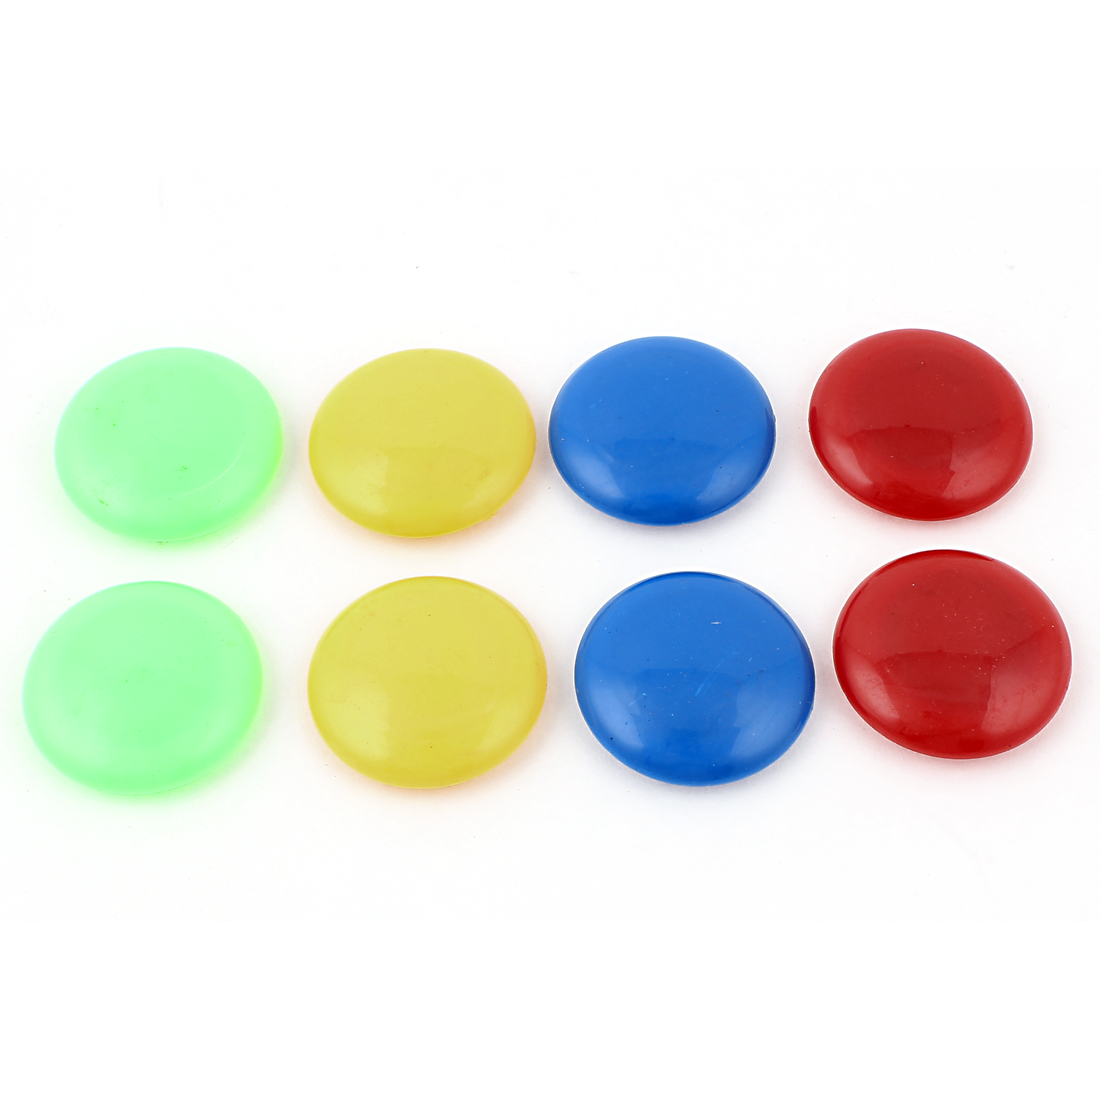 8pcs 39mm Dia Assorted Color Plastic Round Blackboard Whiteboard Fridge Magnetic Sticker